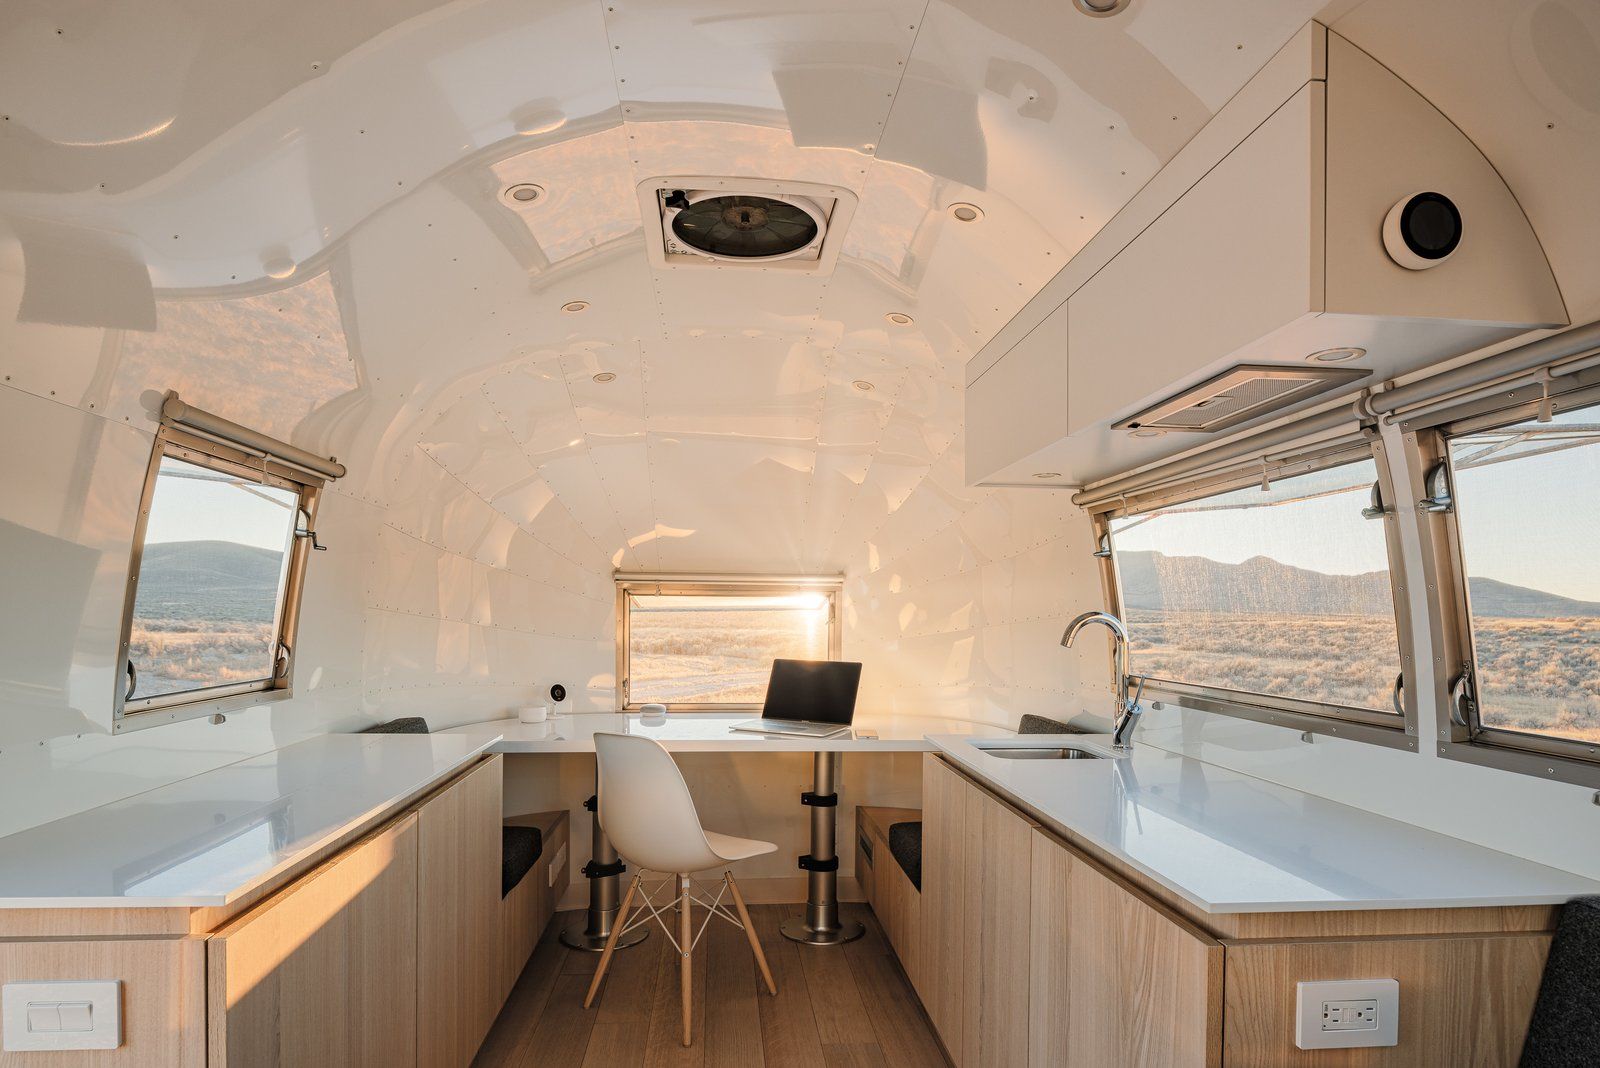 Kugelschiff Airstream trailer office